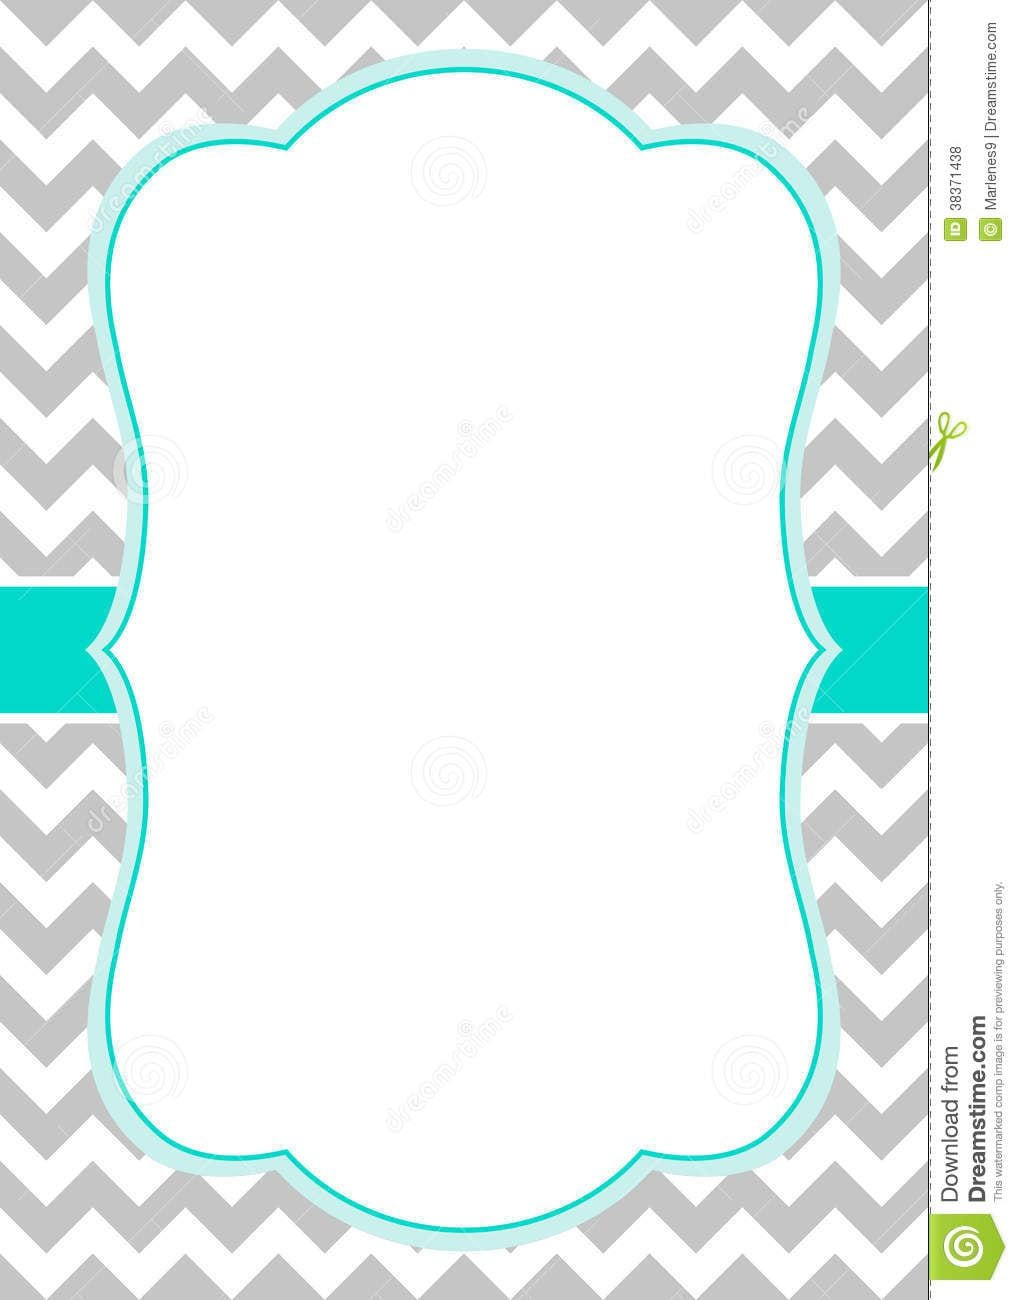 Incredible Free Blank Party Invitation Templates 8 According